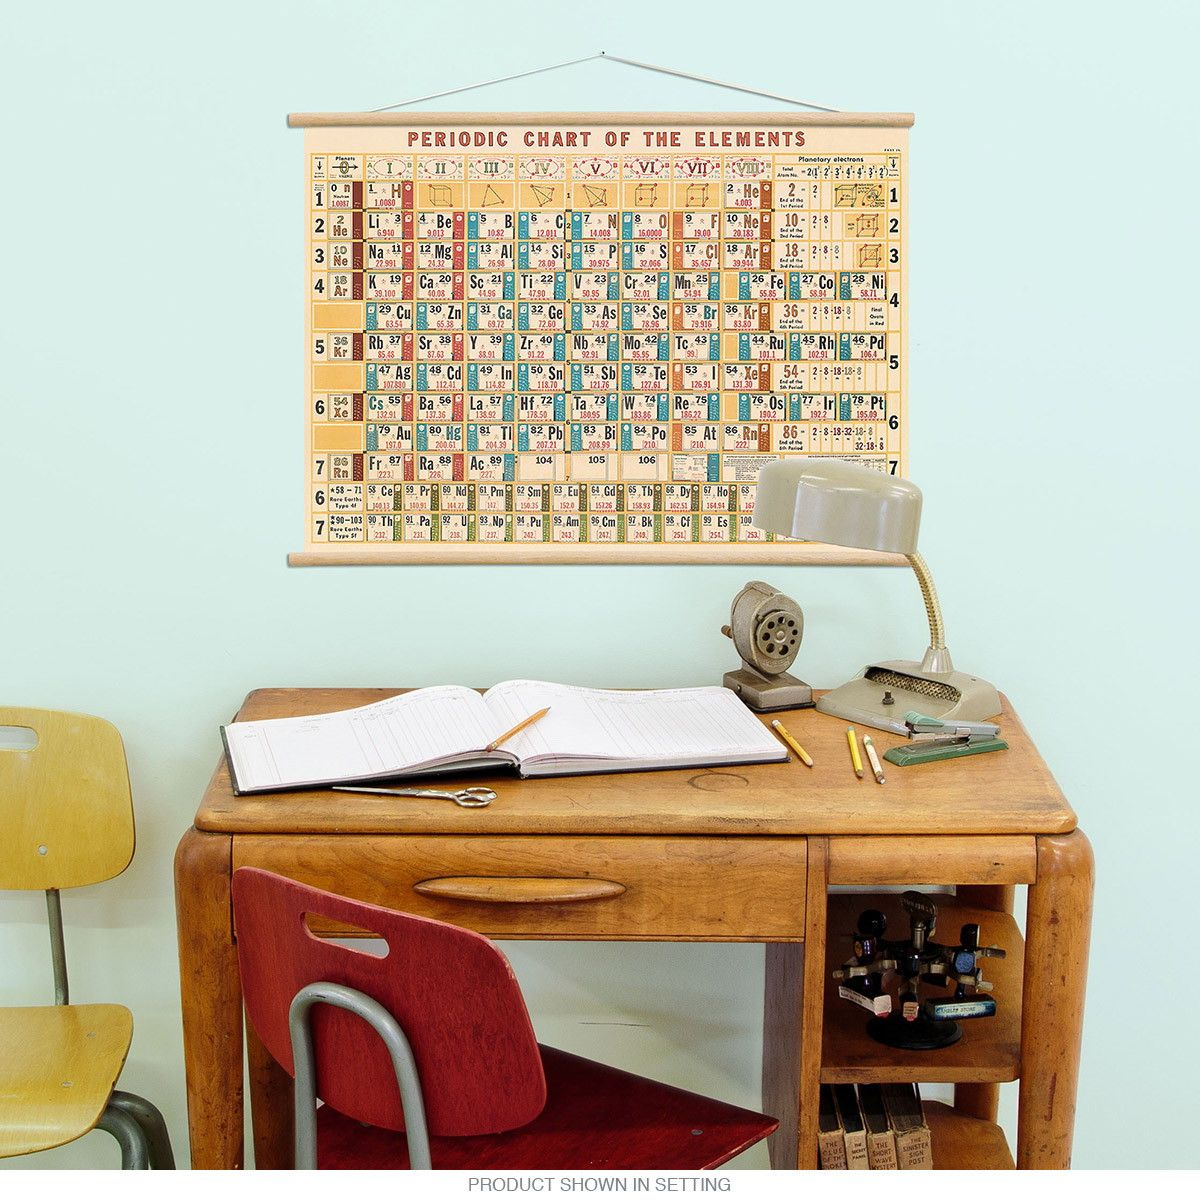 Periodic table vintage style chemistry poster hanger kit periodic table vintage style chemistry poster hanger kit urtaz Images